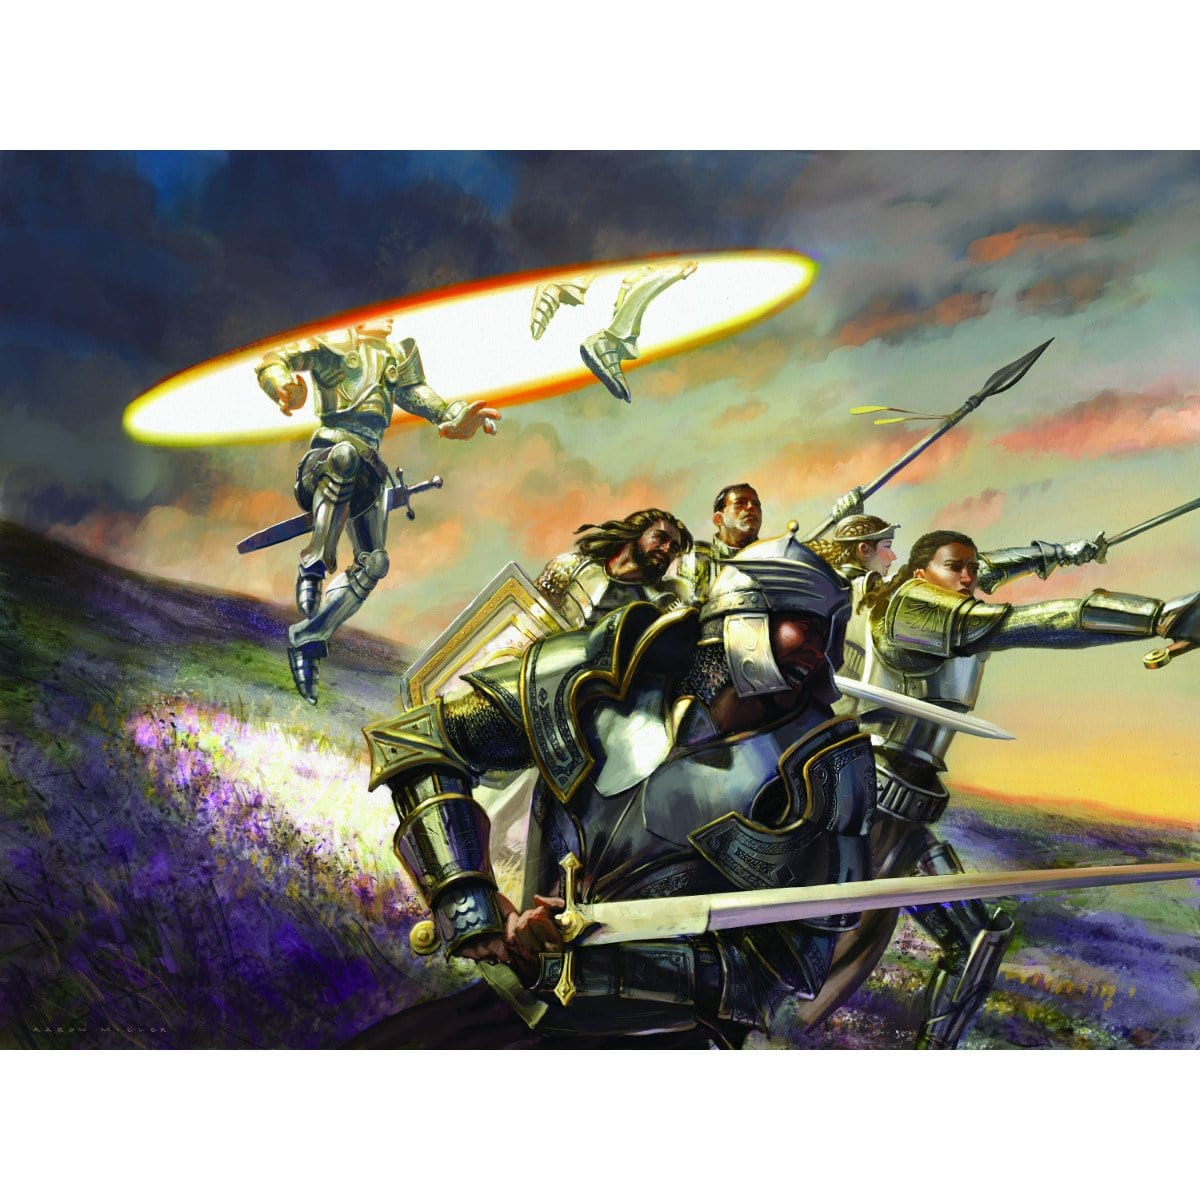 Deploy to the Front Print - Print - Original Magic Art - Accessories for Magic the Gathering and other card games